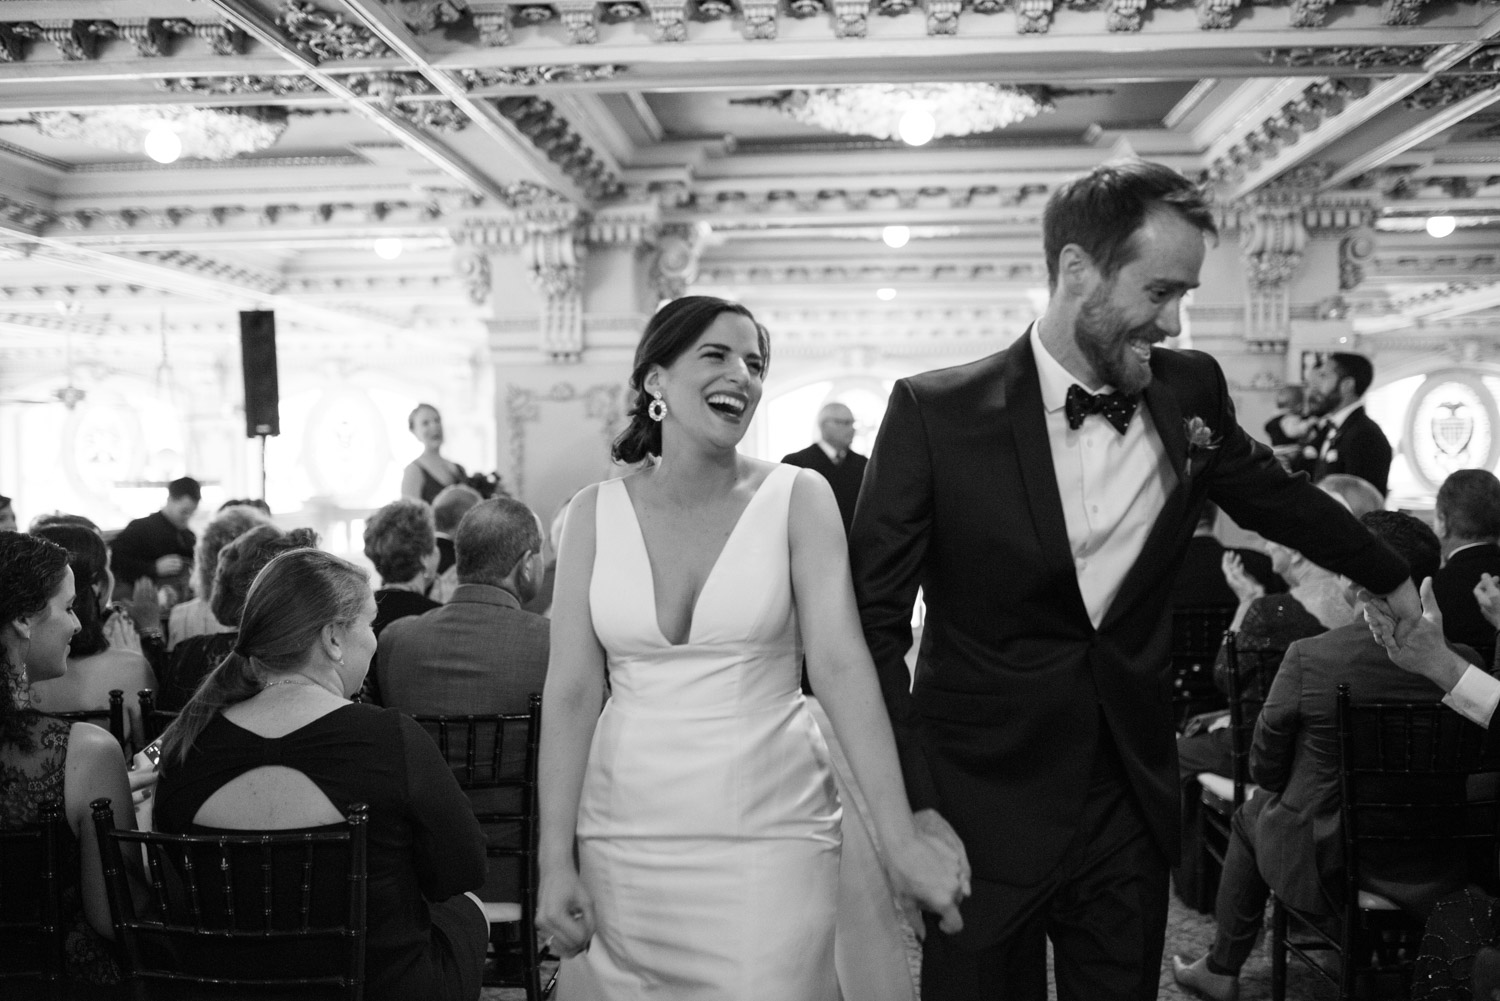 Ryan & Stephanie - Providence, RIVenues: The Dorrance & Providence GFloral: StoneblossomFeatured: Bliss Celebrations